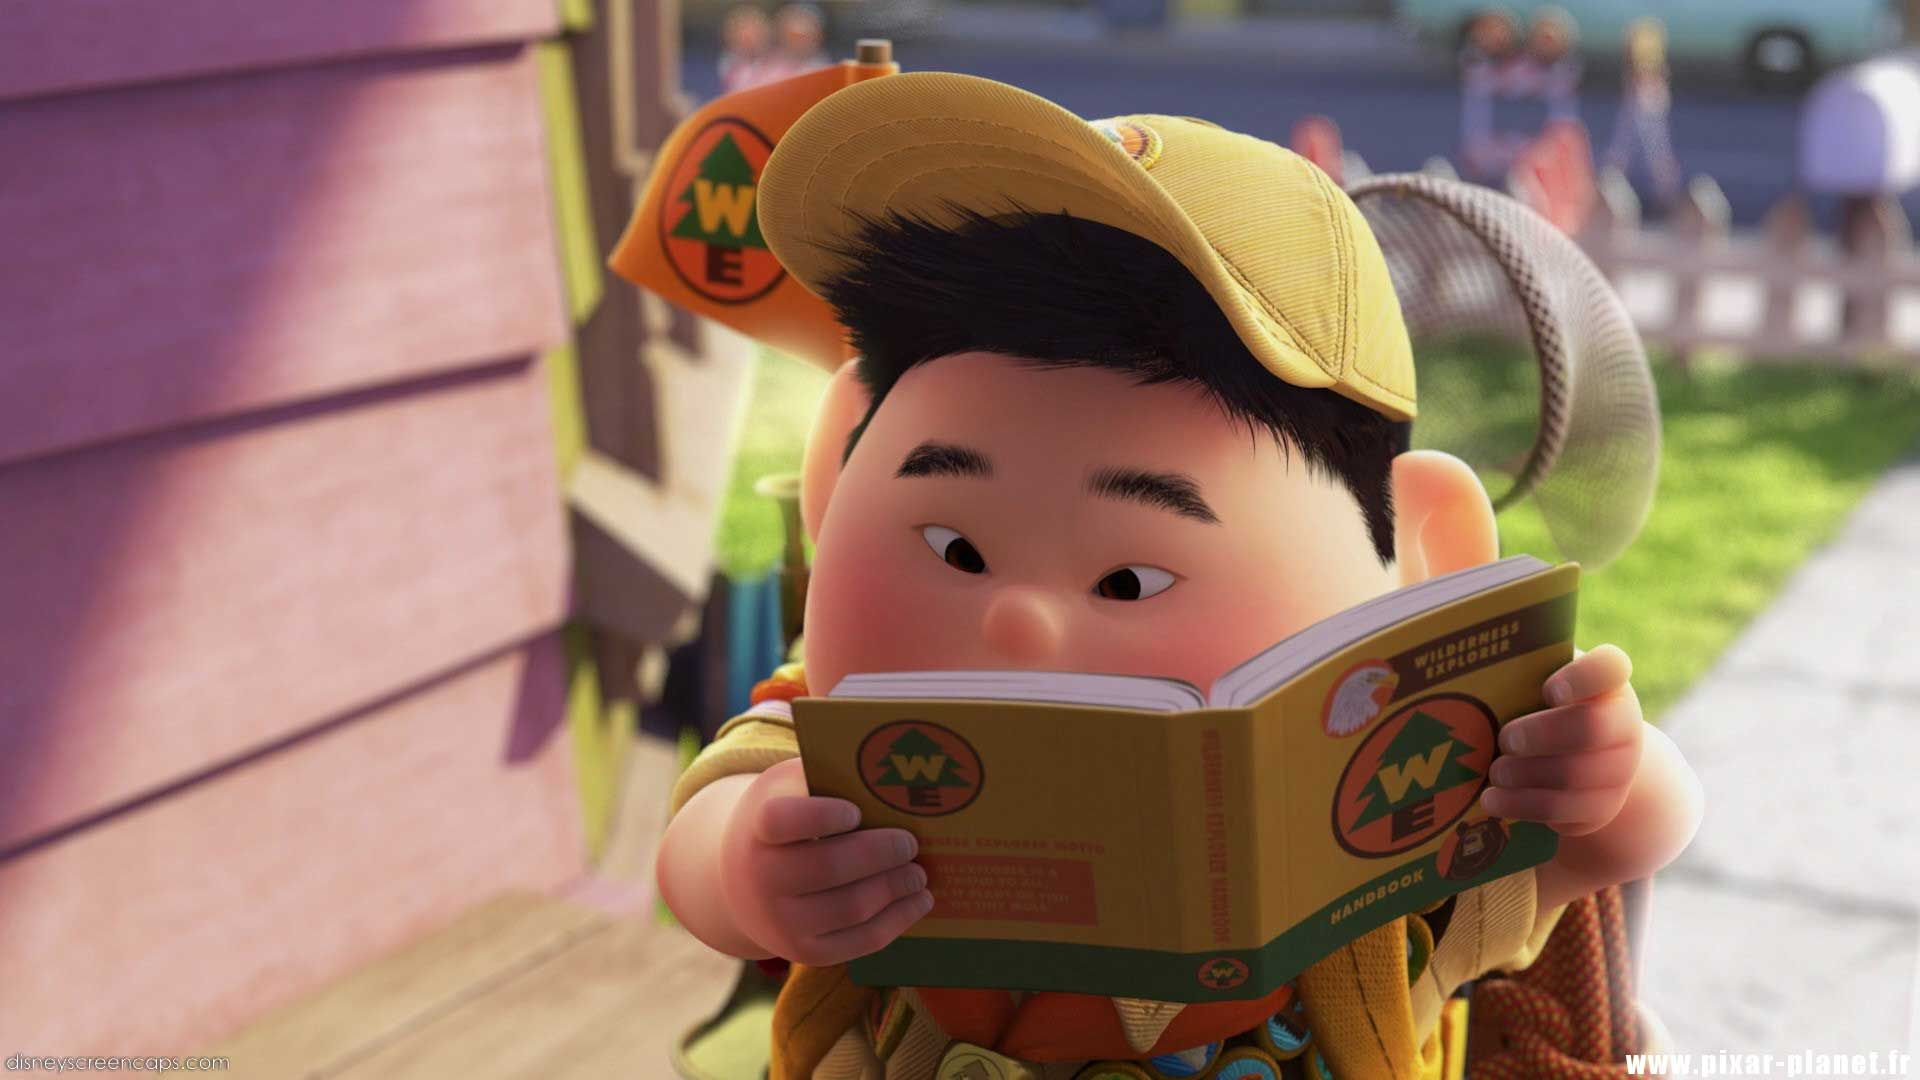 Place names in / related to Disney Pixar's UP movie?